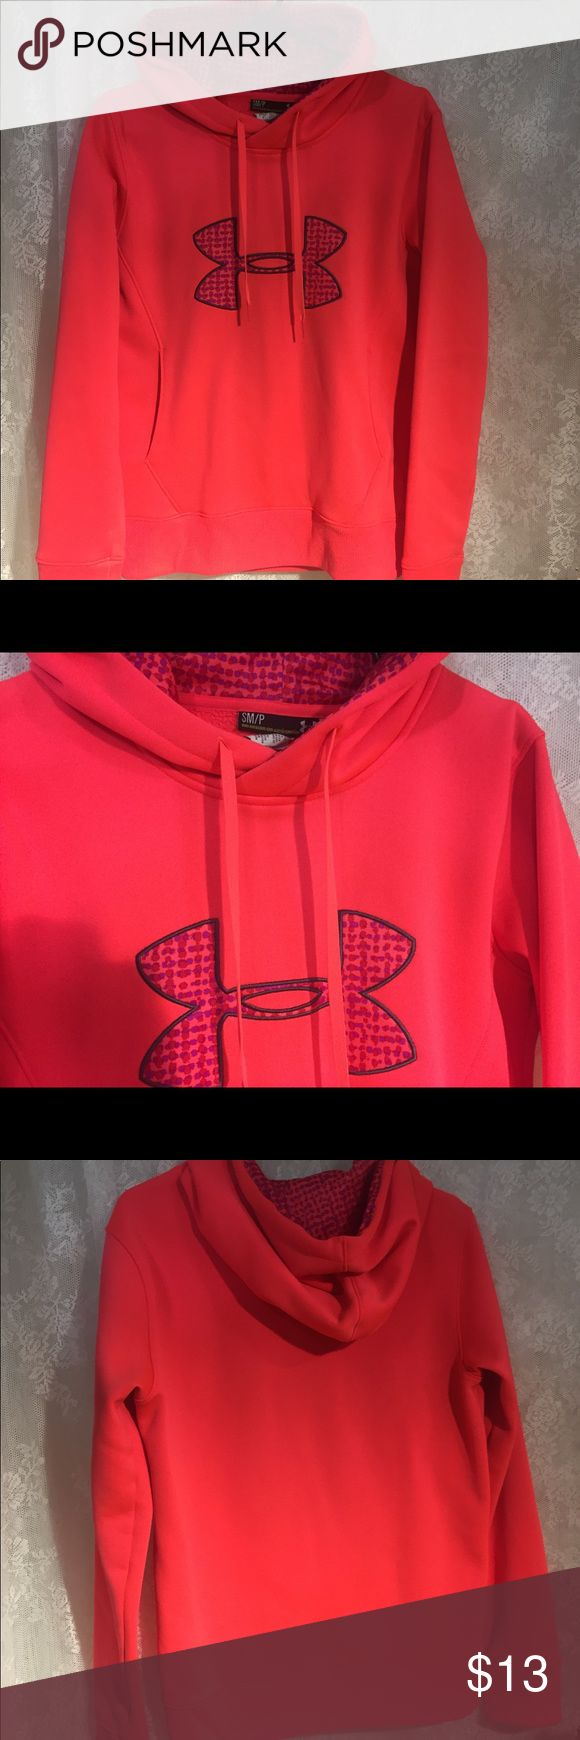 Size small Under Armour hoodie In great condition bright coral or orange with purple size small under armor hoodie Under Armour Tops Sweatshirts & Hoodies